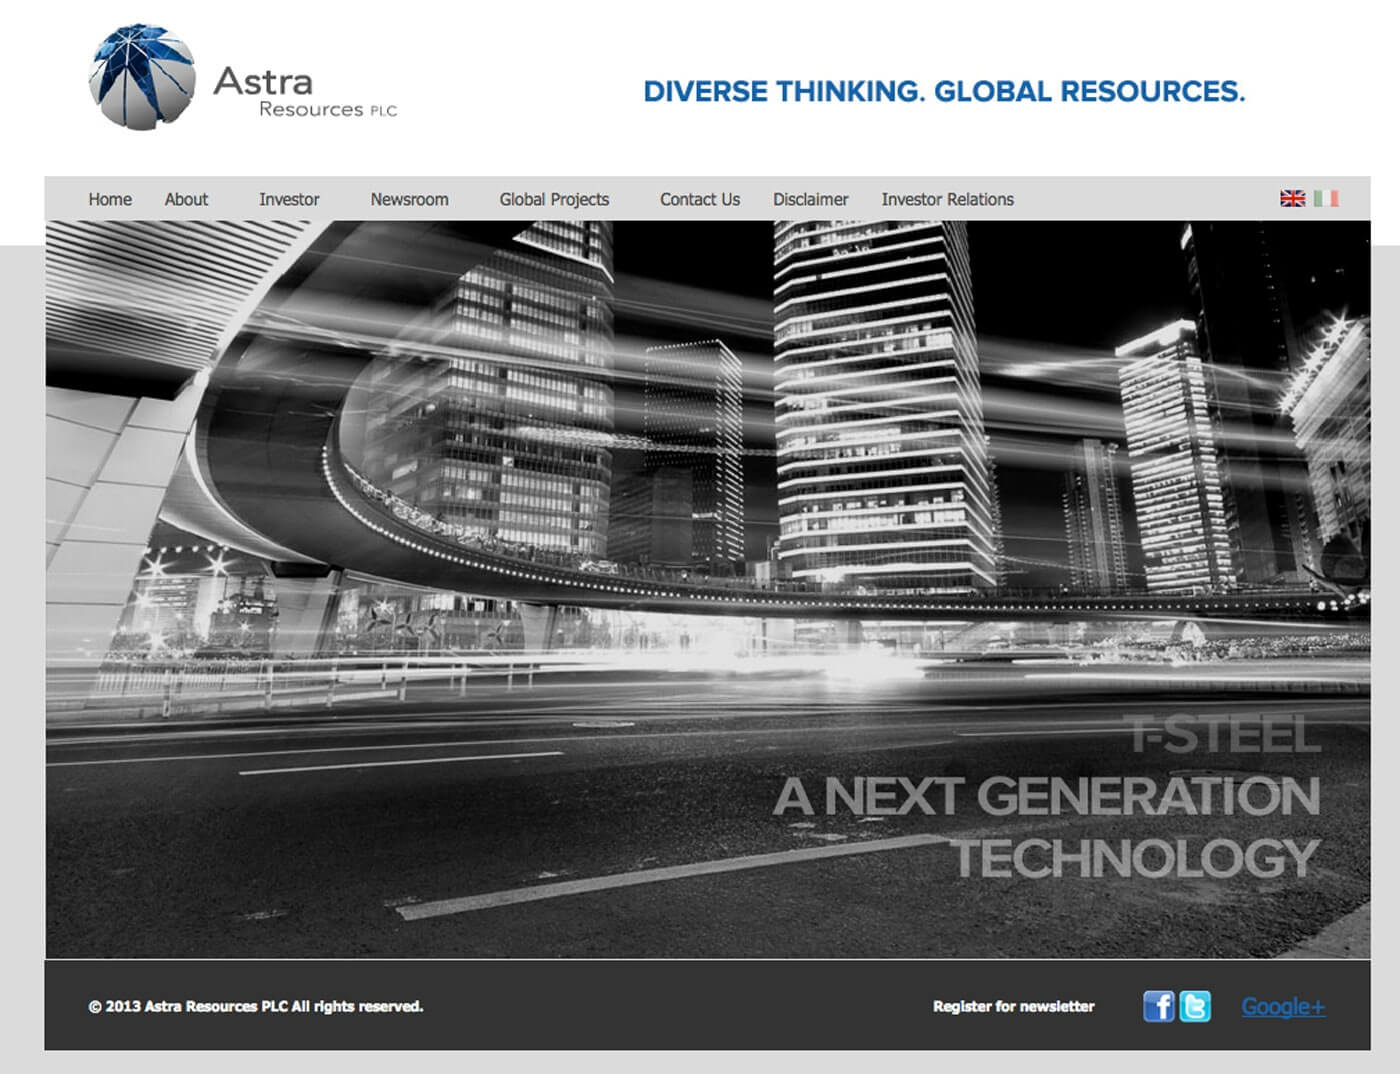 Astra Resources PLC